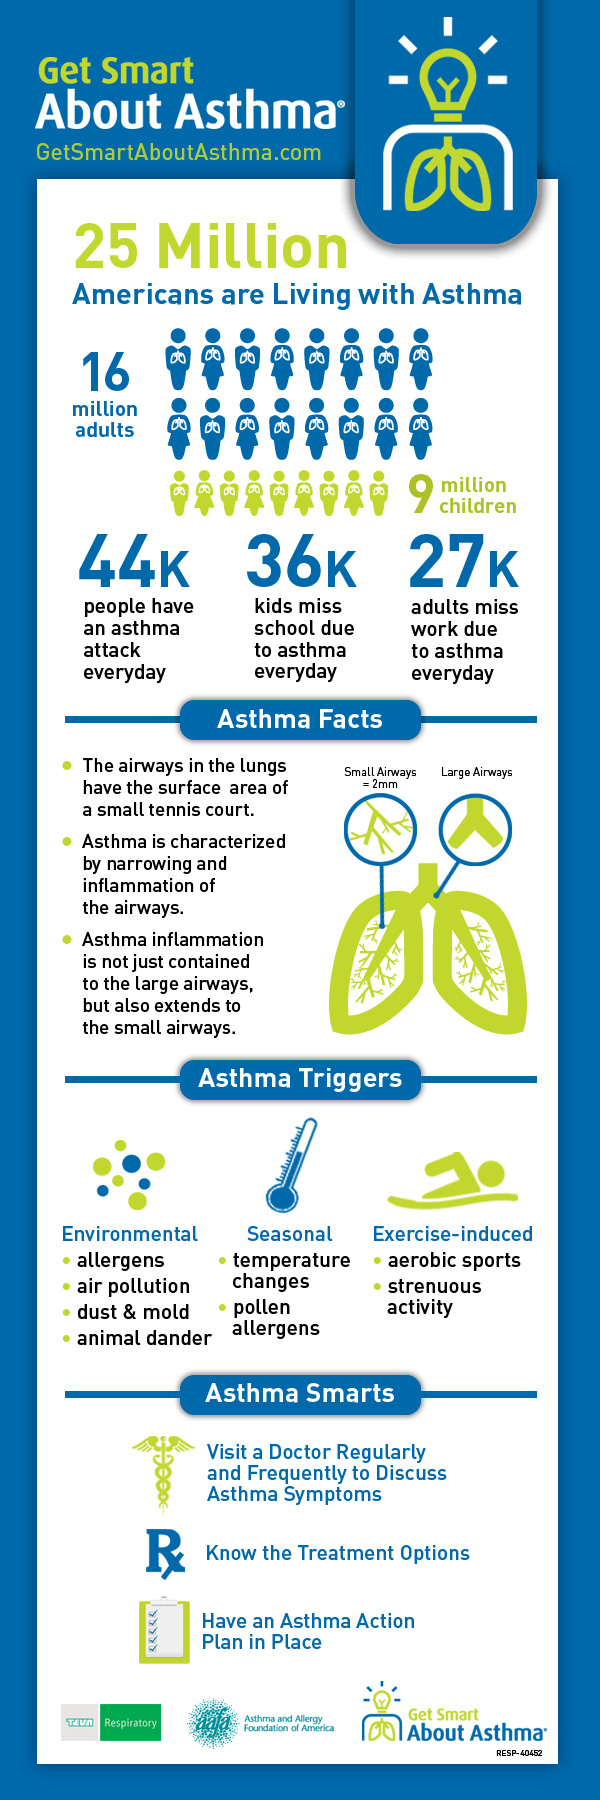 asthma treatment australia articles pdf